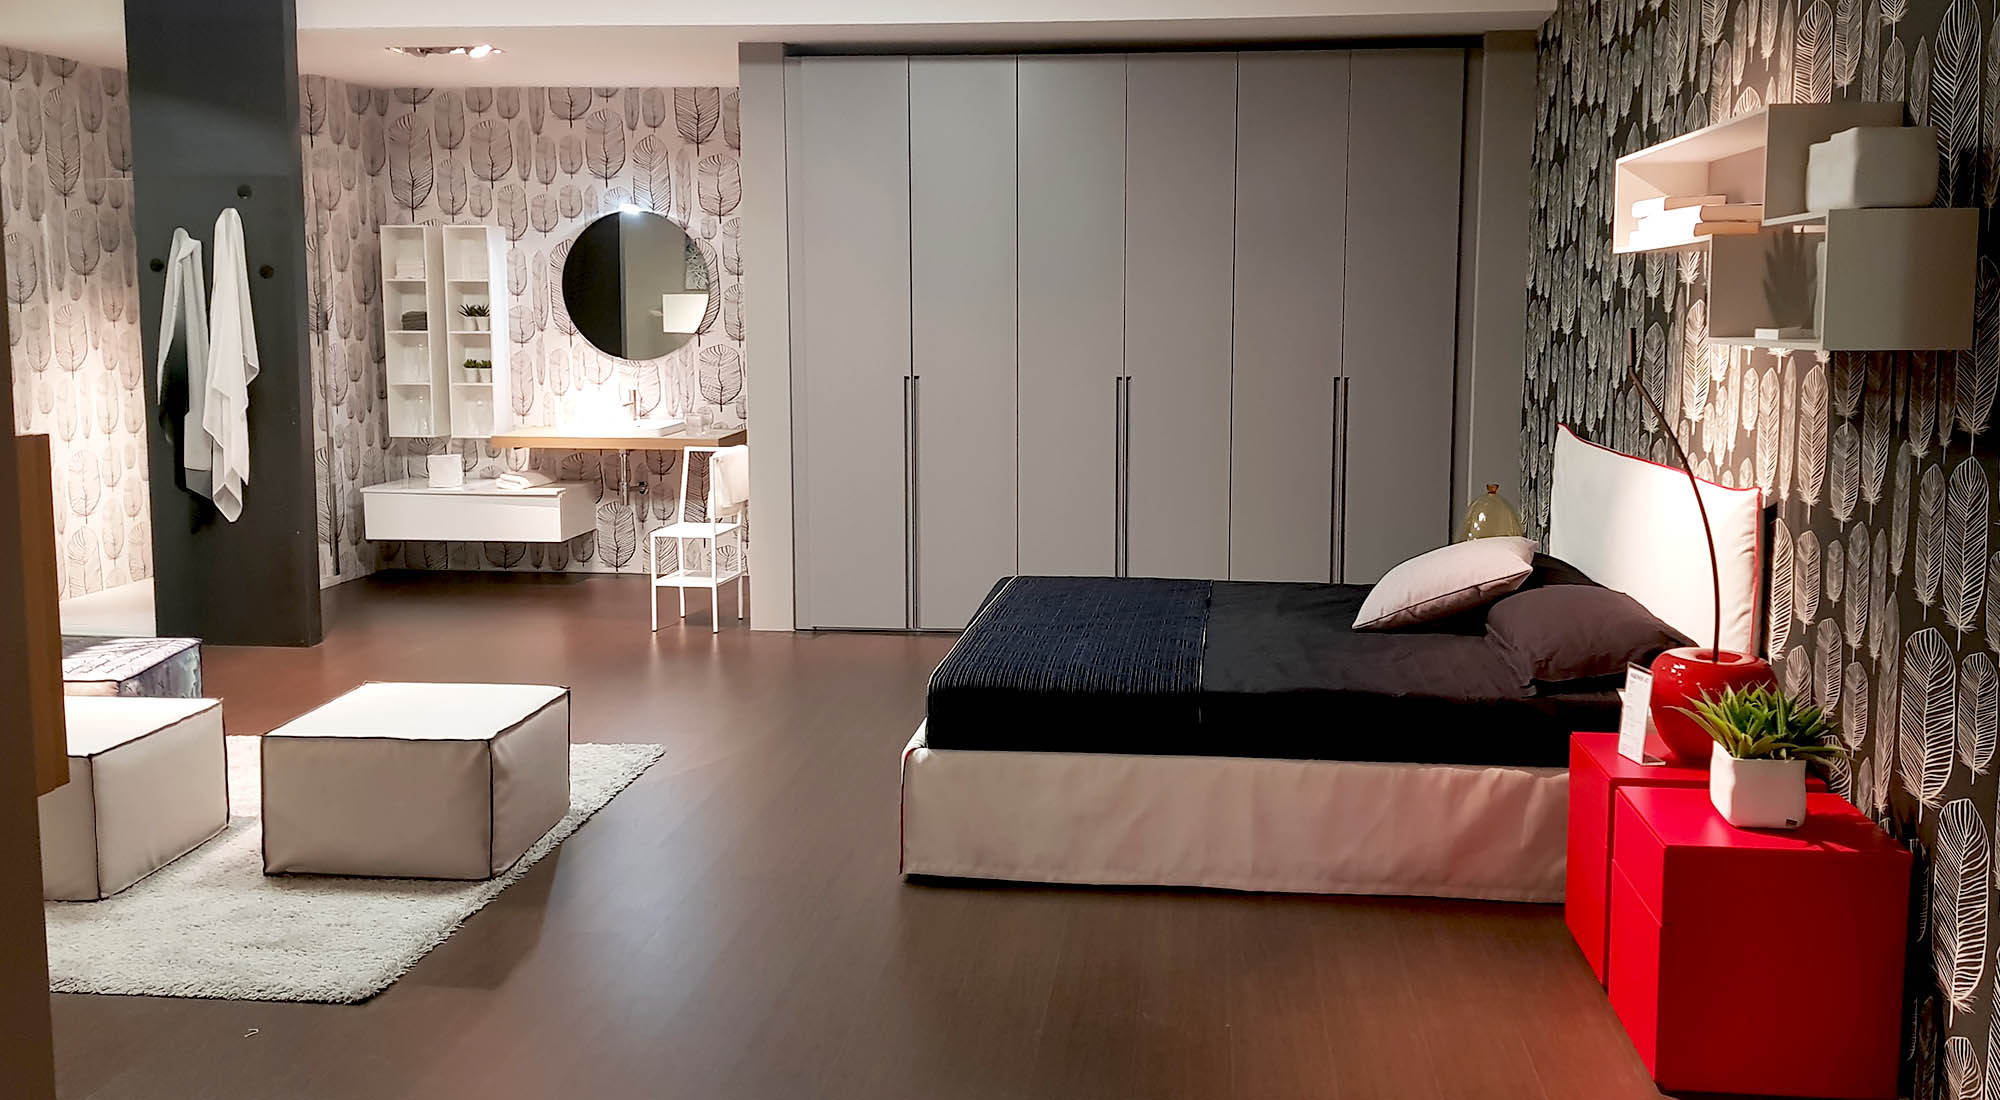 https://www.arredamentimeneghello.it/wp-content/uploads/2019/01/arredamento-per-camera-da-letto.jpg